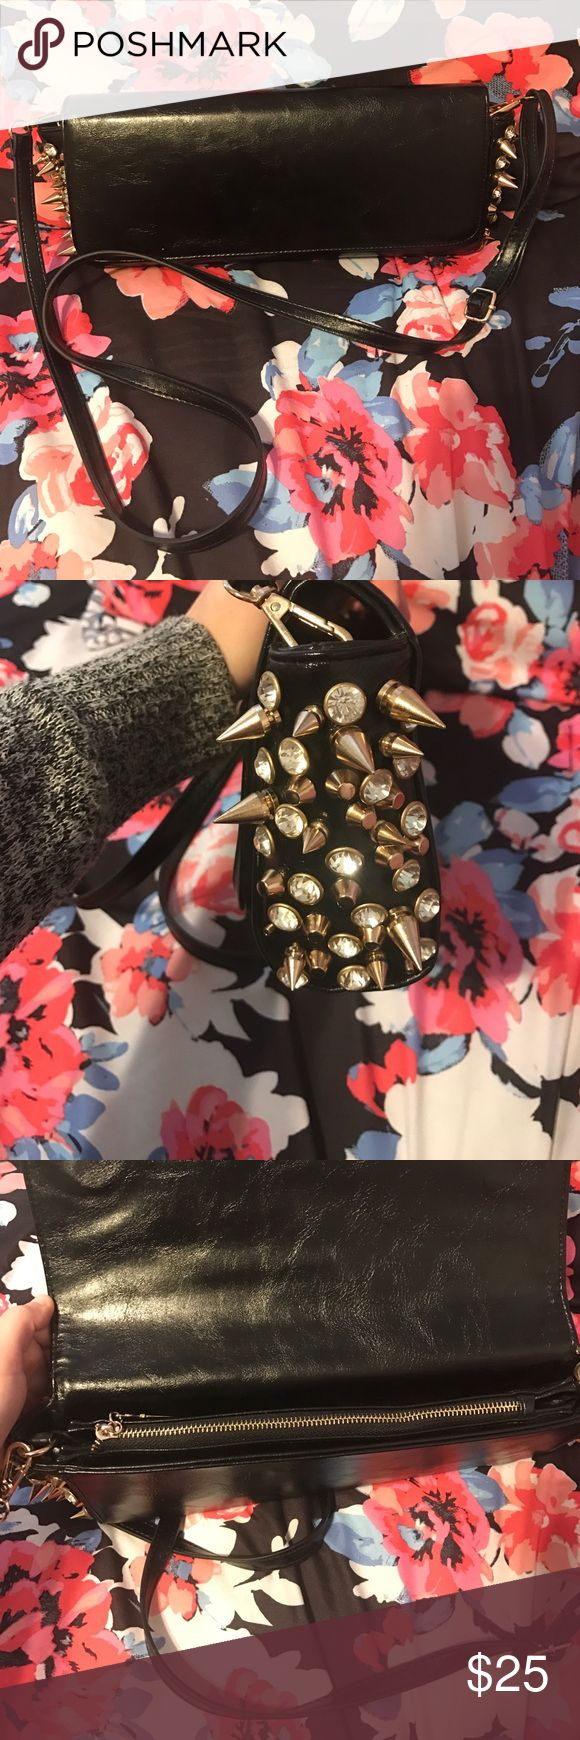 Cute spiked handbag Shoulder strap is removable to use as a clutch as well. No brand name listed purchased from a boutique. This is new never used Zara Bags